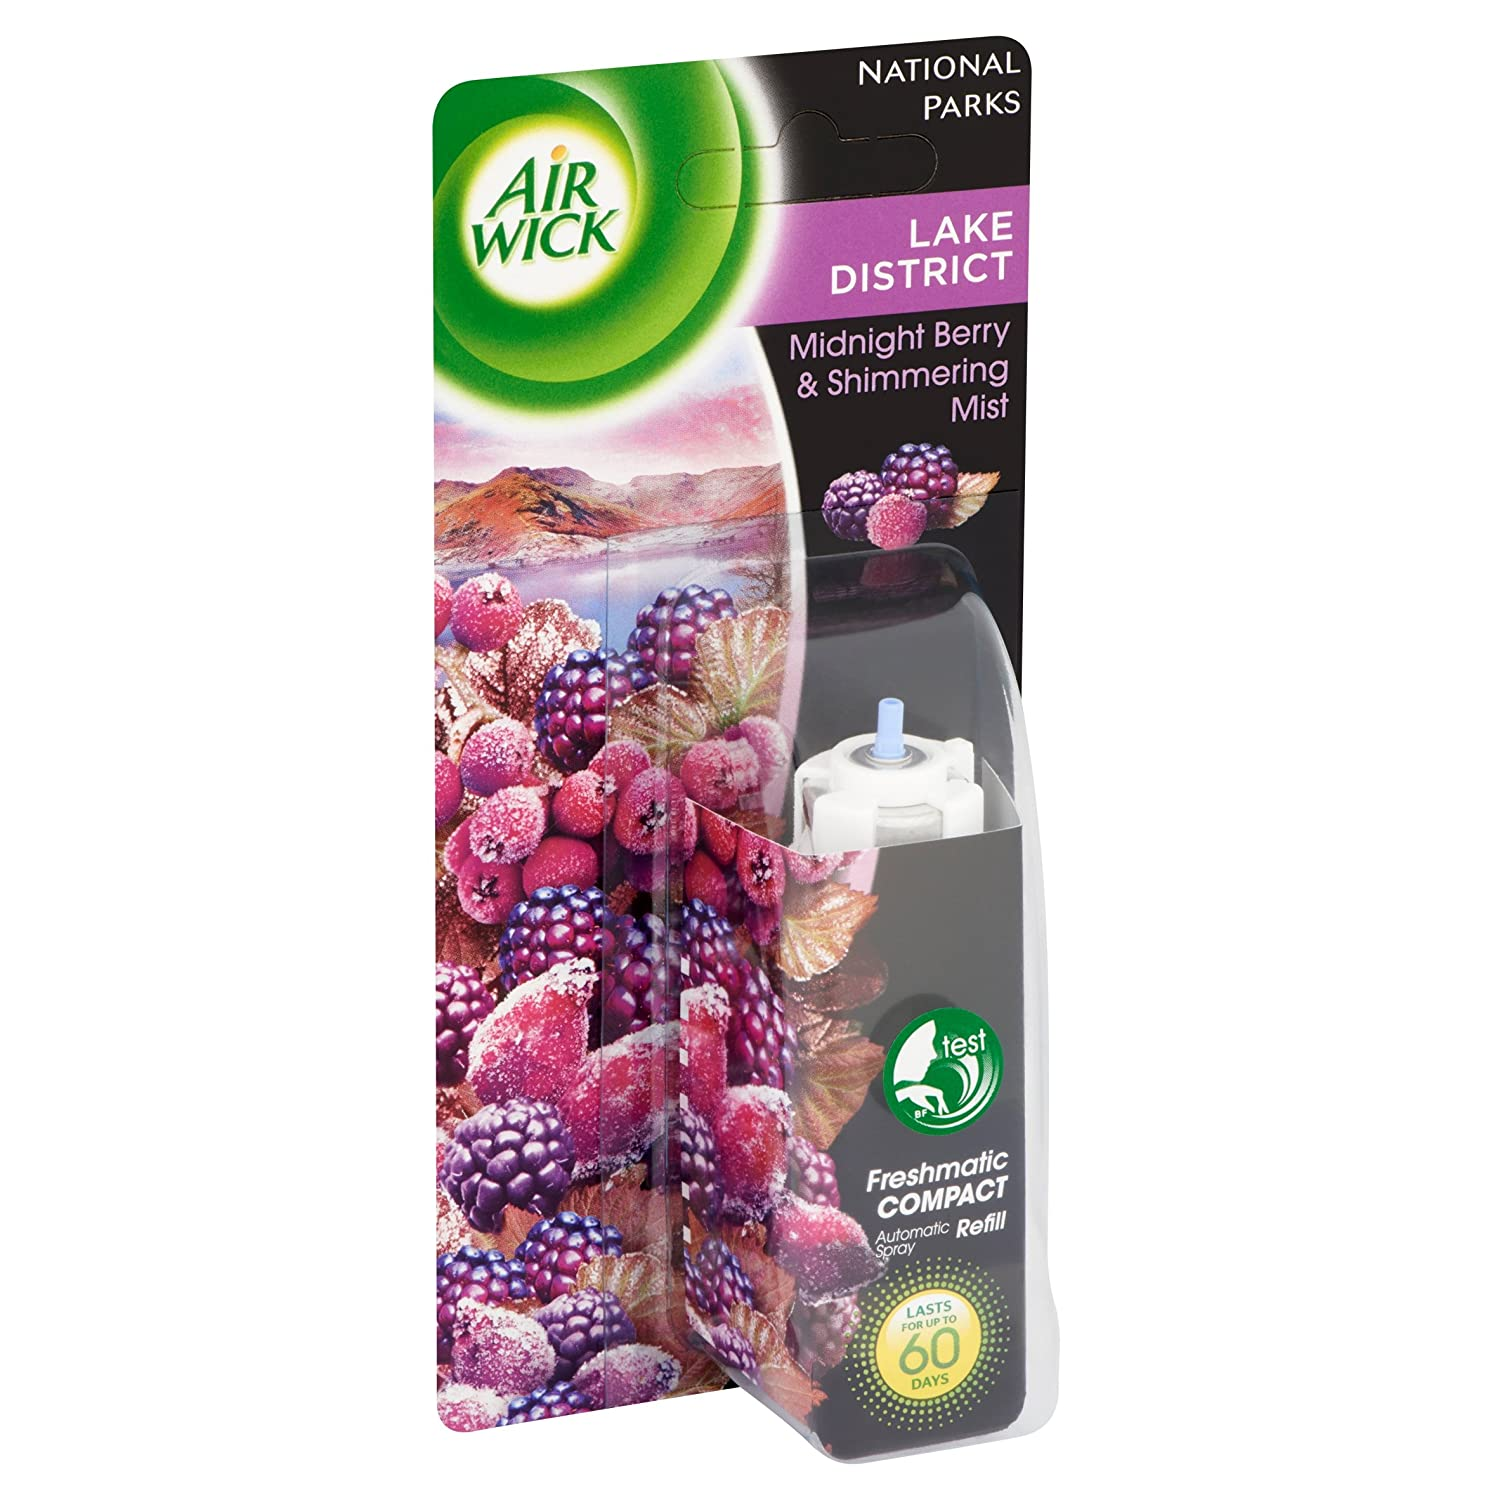 Air Wick Freshmatic Compact Air Freshener Refill Midnight Berry and Shimmering Mist Midnight Berry and Shimmering Mist 24ml (Pack of 3)